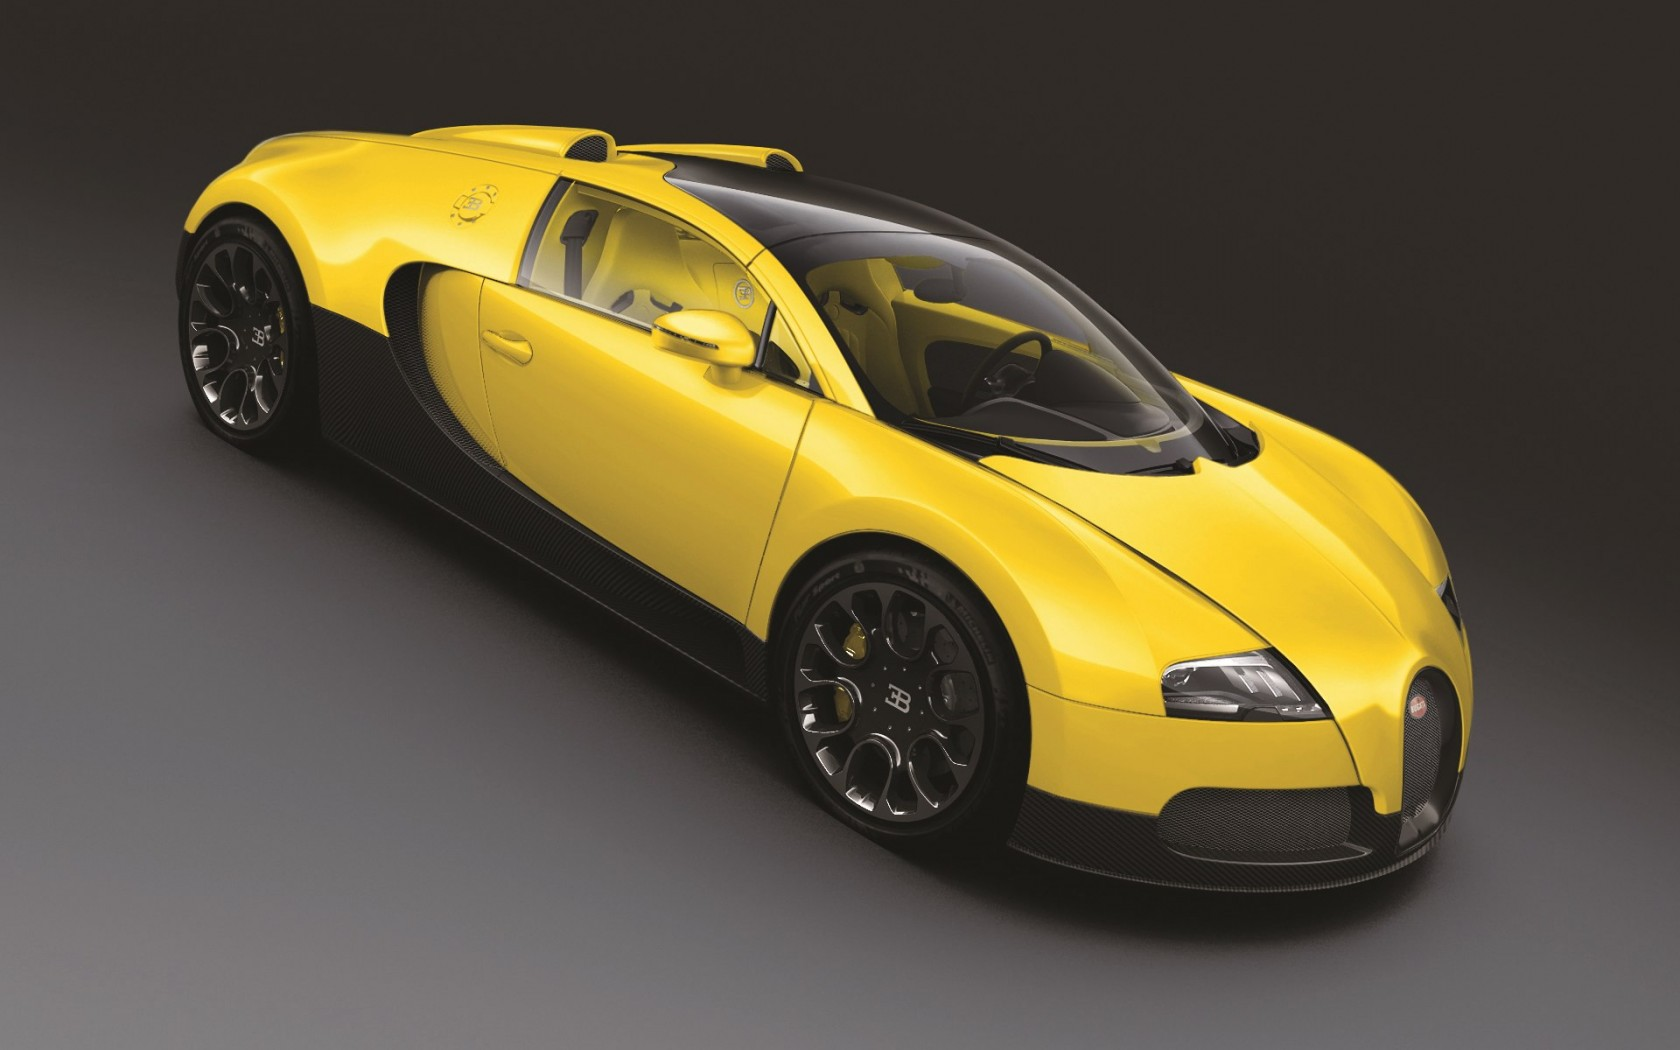 bugatti veyron 16 4 grand sport 2011 wallpaper hd car. Black Bedroom Furniture Sets. Home Design Ideas